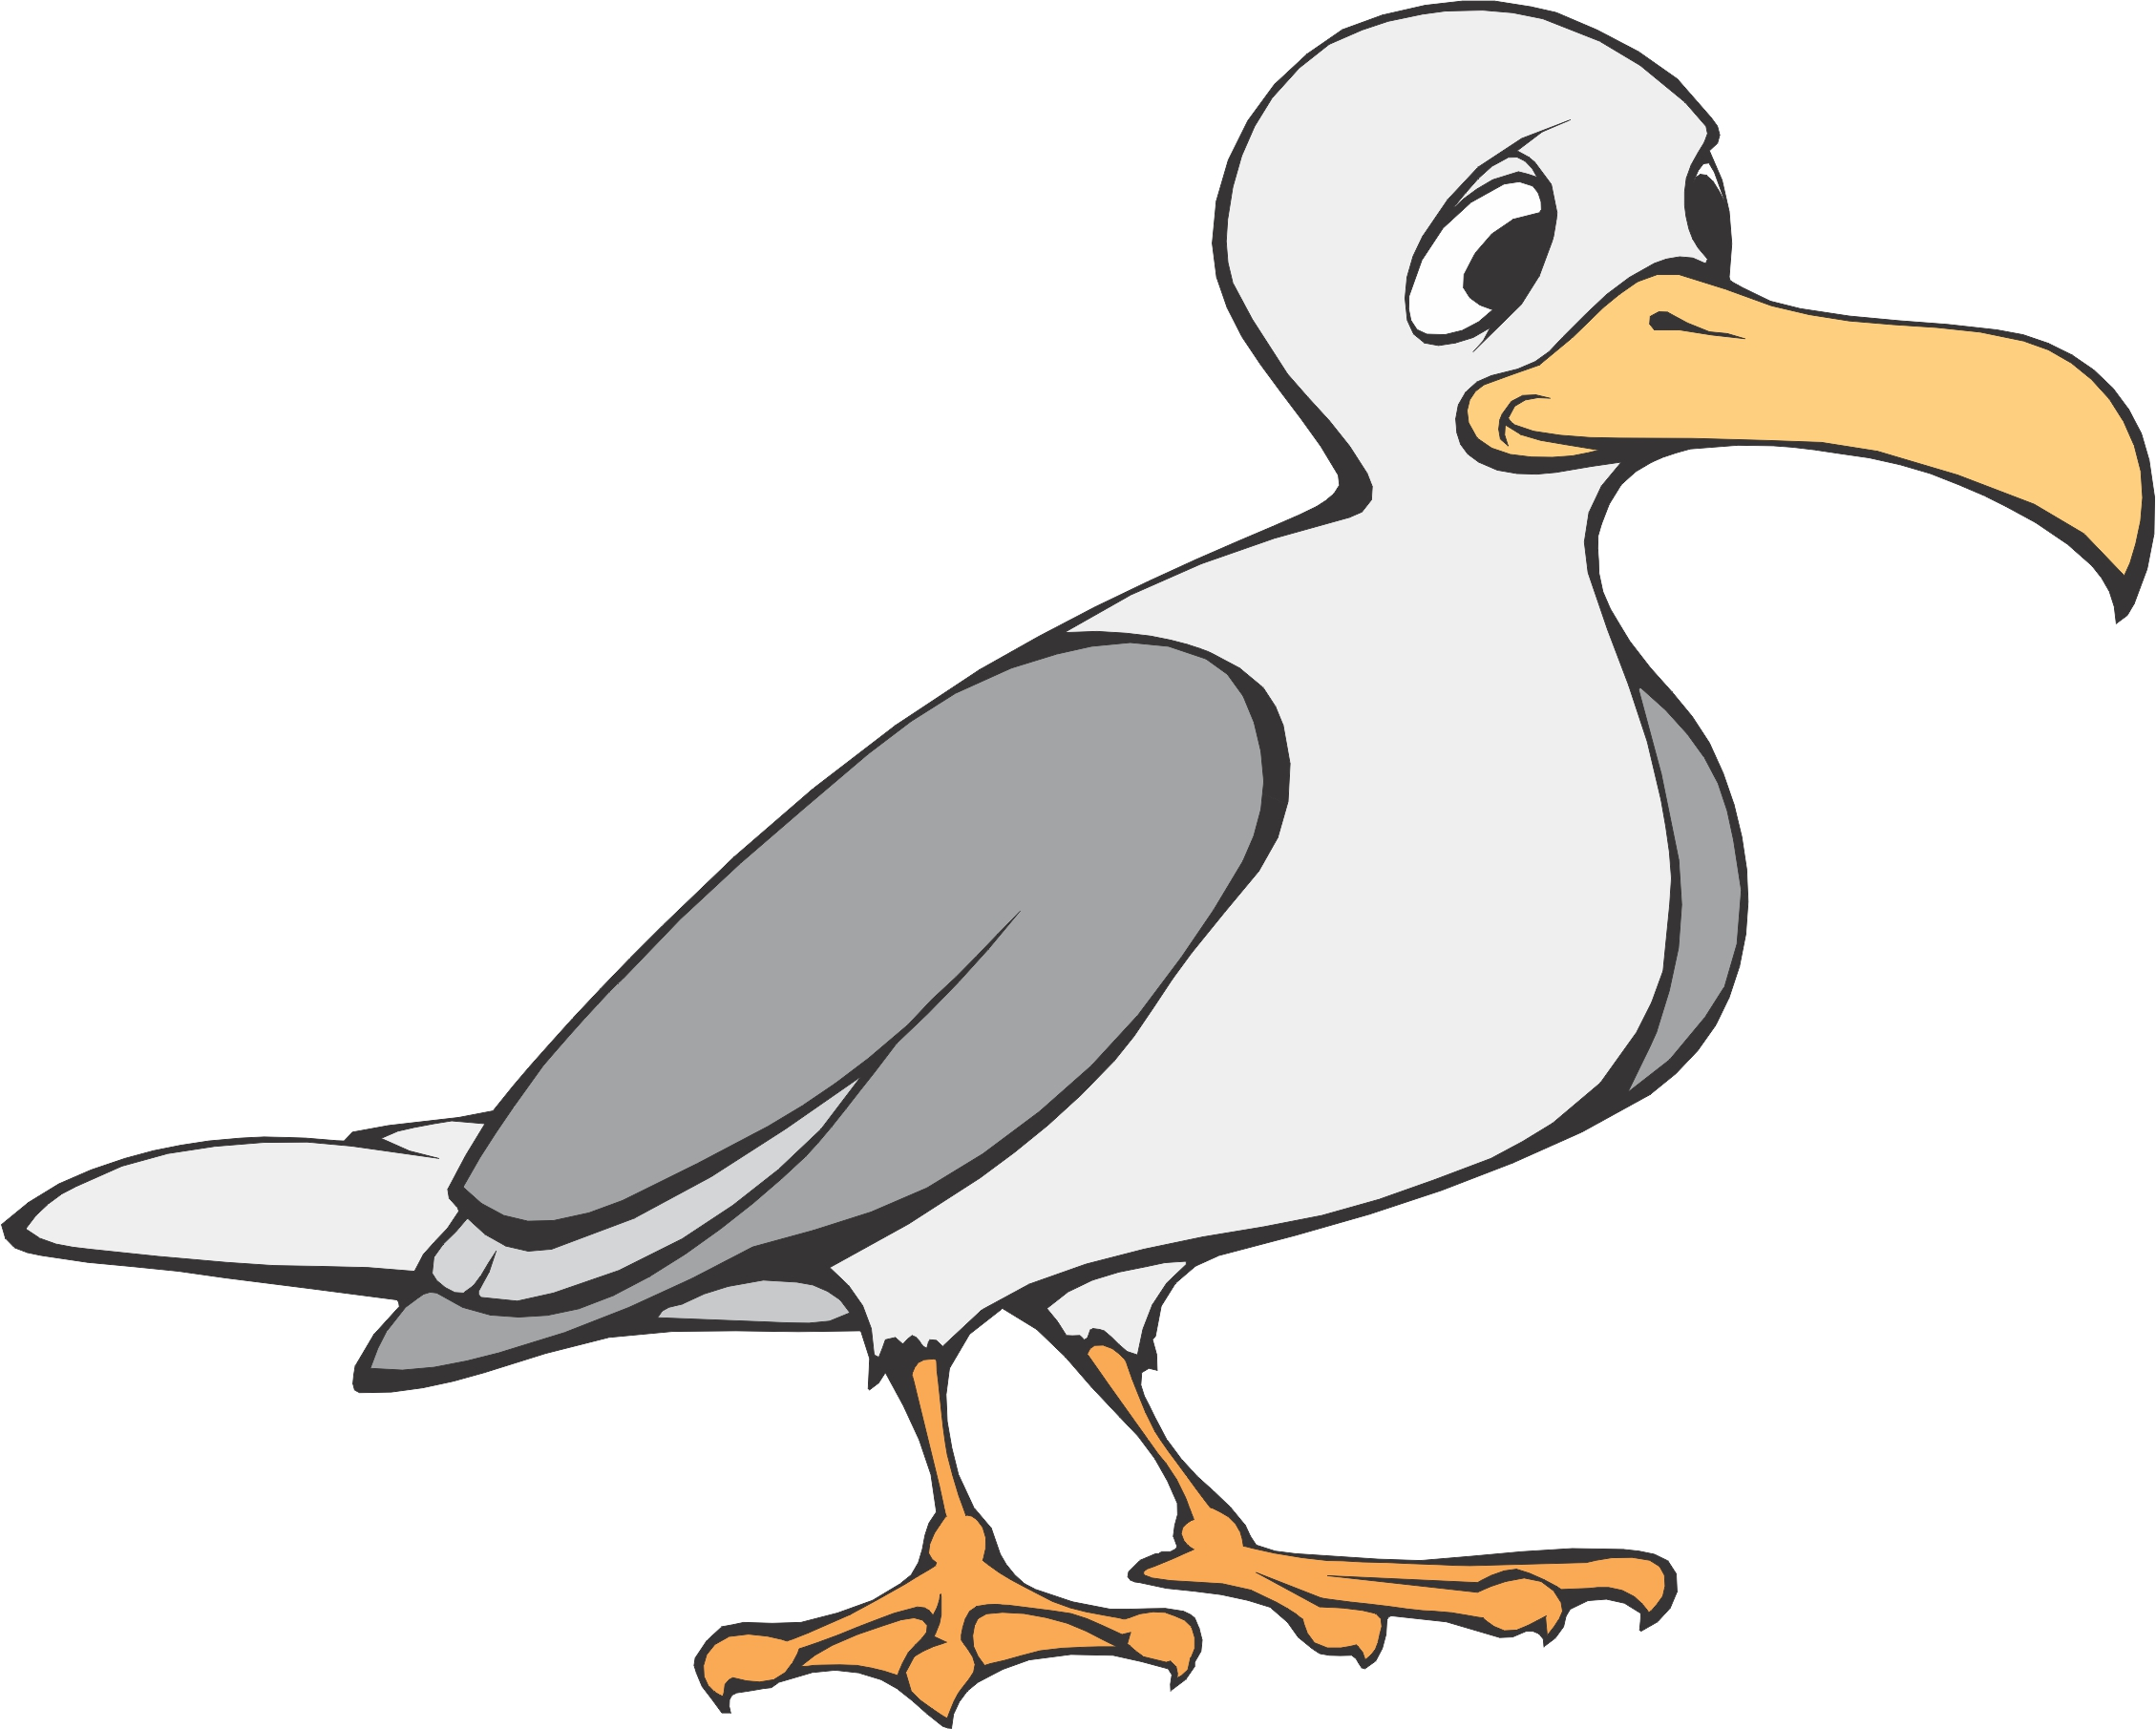 Free clipart downloads seagulls transparent library Free Seagull Cliparts, Download Free Clip Art, Free Clip Art on ... transparent library